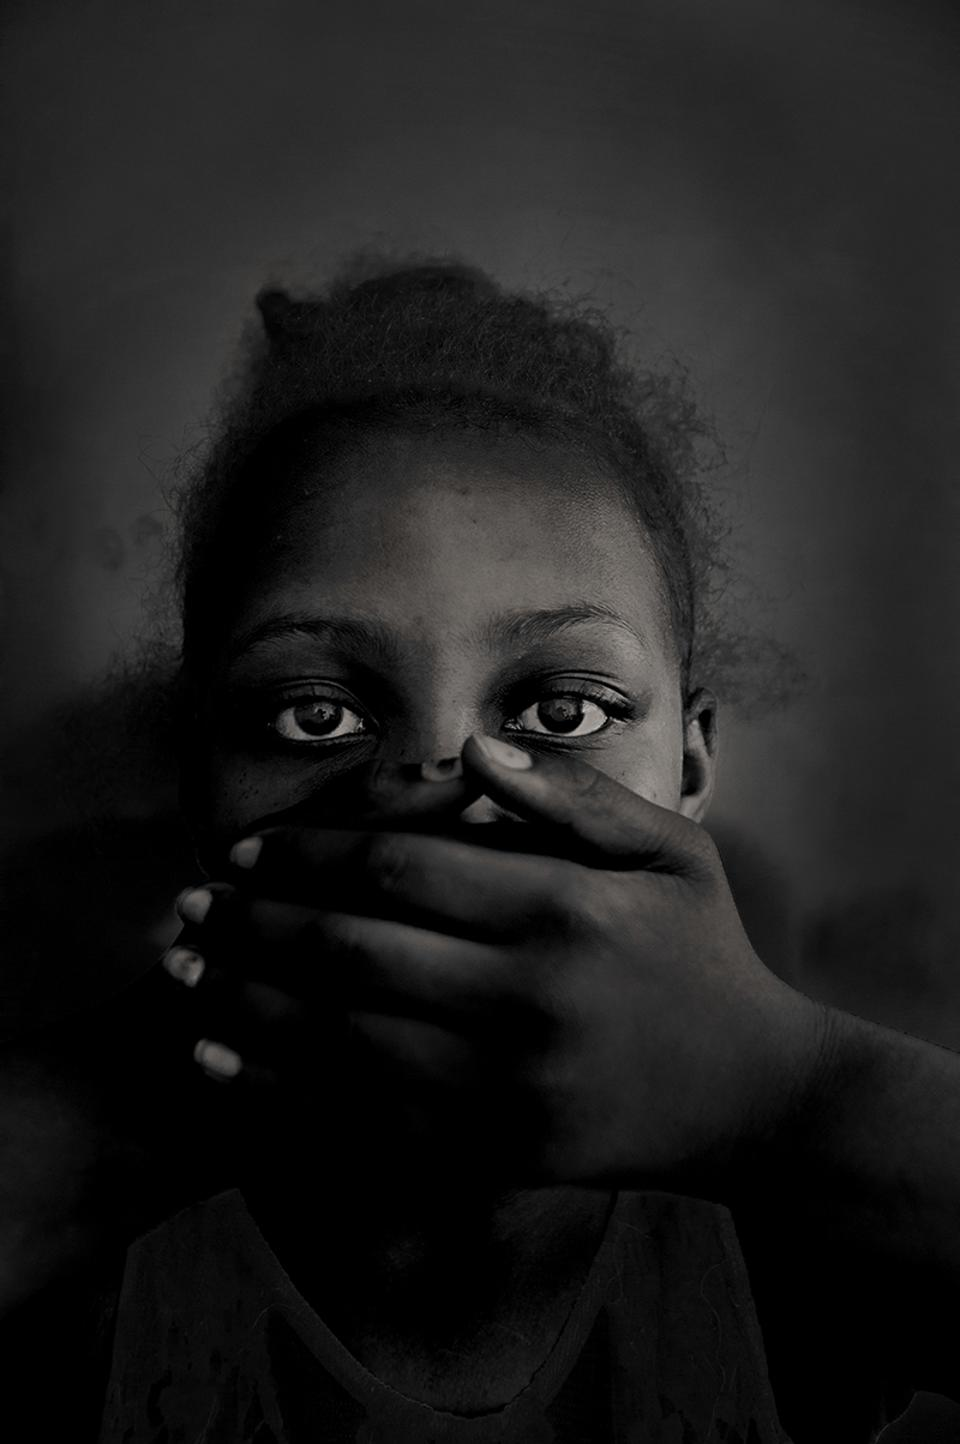 Hold Still portraits exhibit, black girl with hands covering mouth